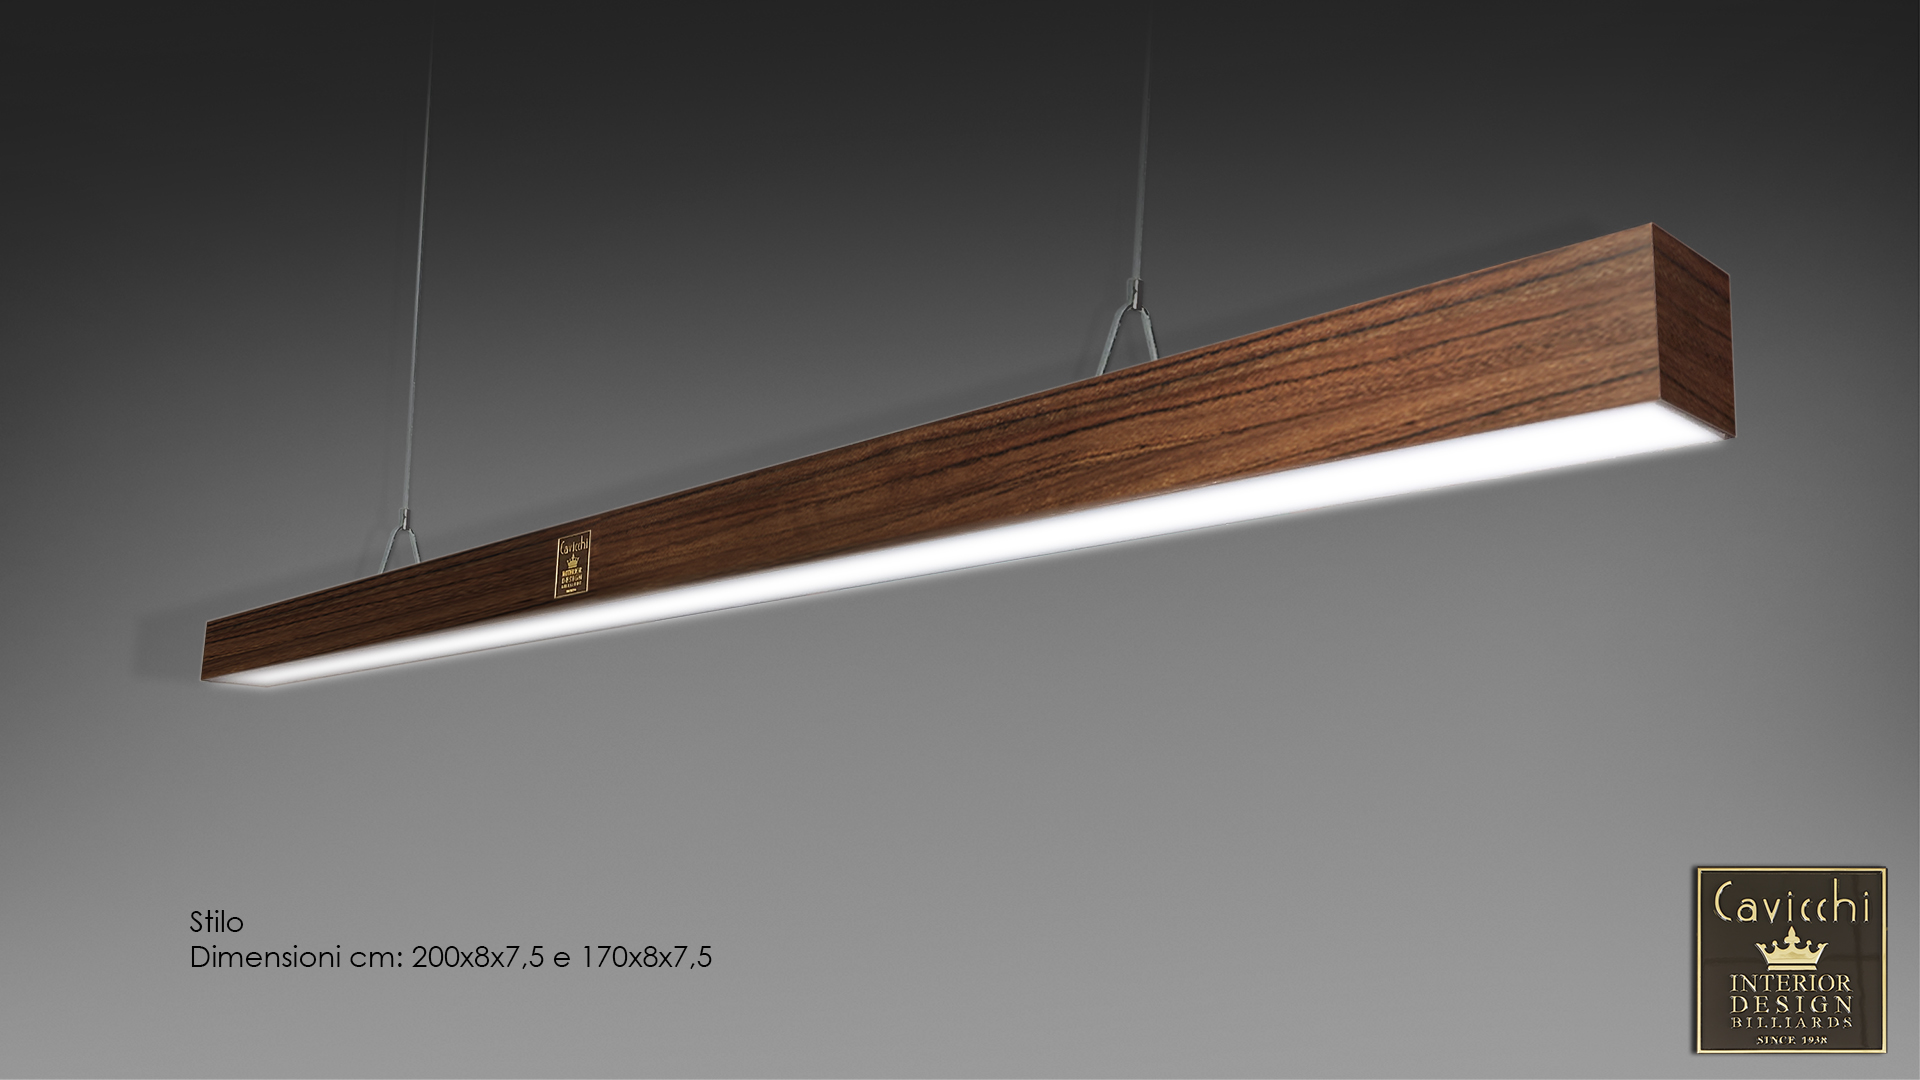 Stilo lamp lacquered and precious woods 1